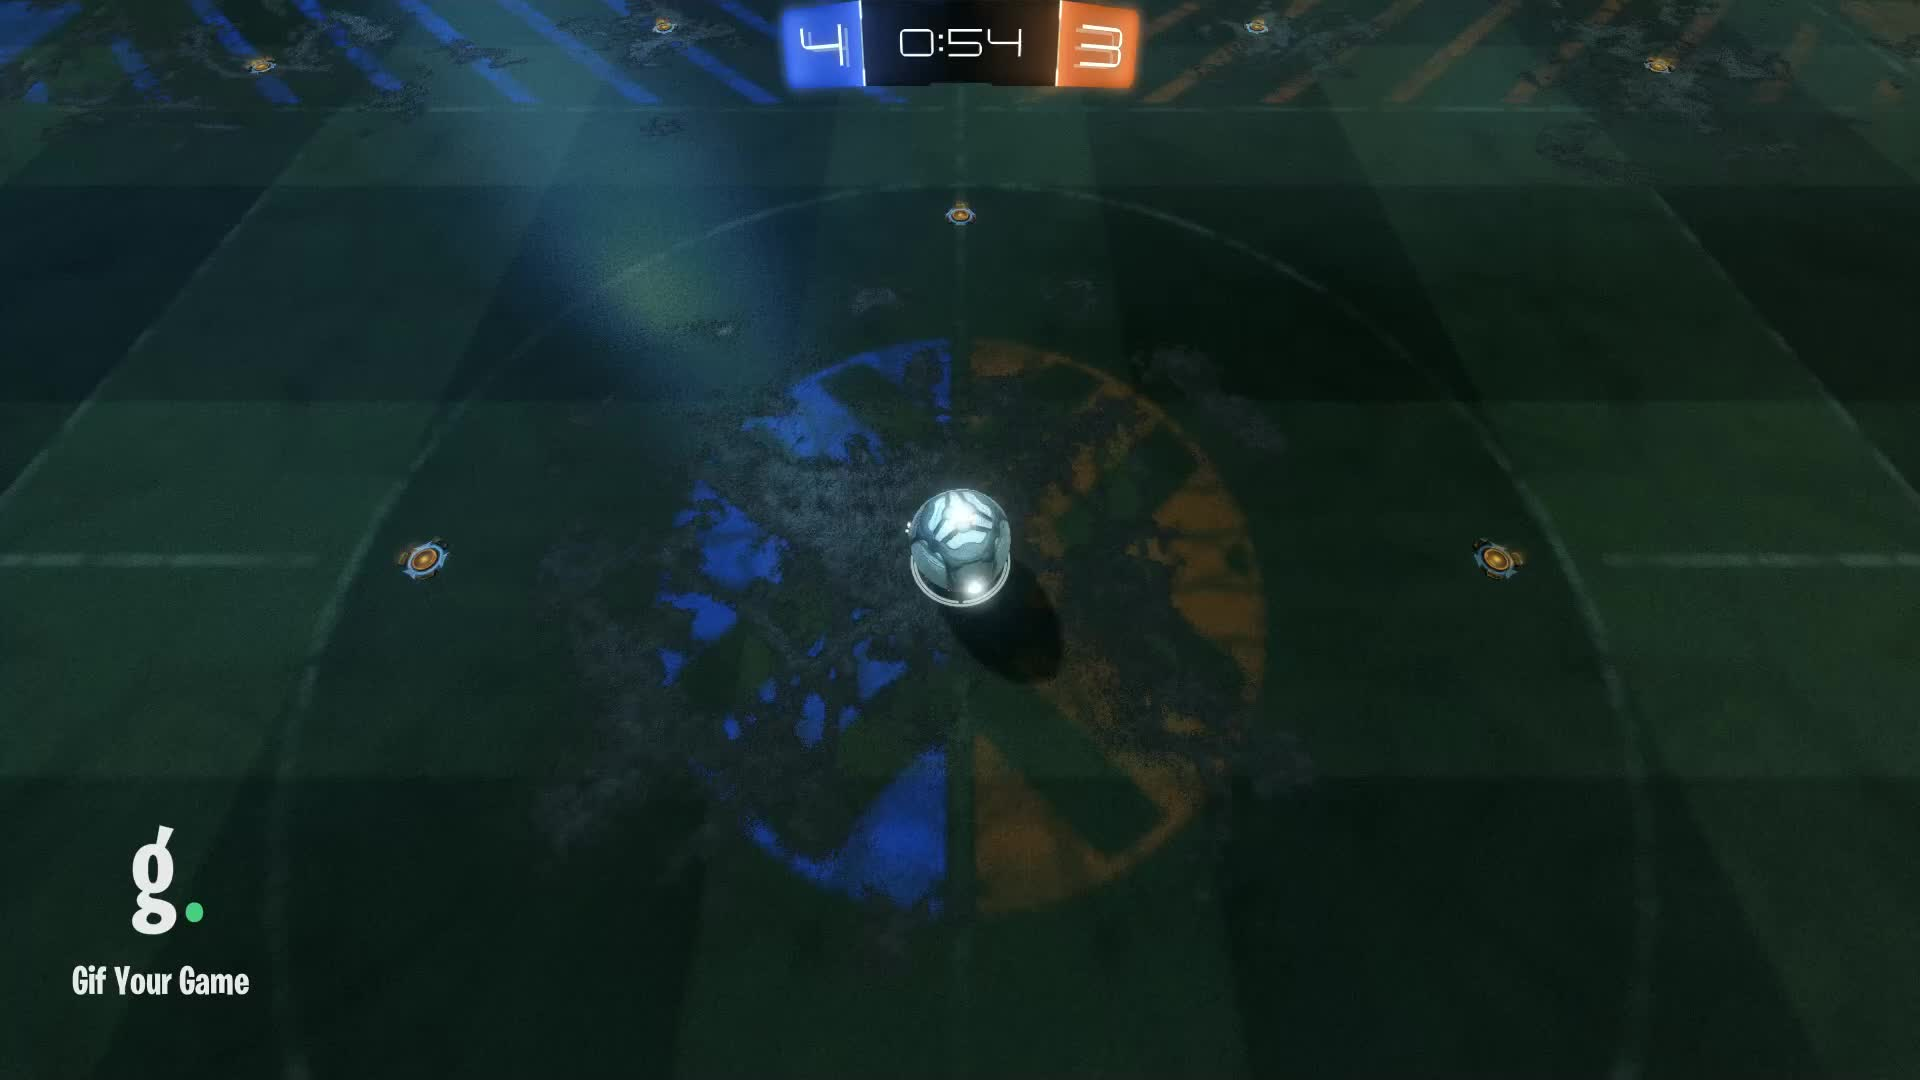 Gif Your Game, GifYourGame, Goal, Rocket League, RocketLeague, Goal 8: TinnieSinker GIFs